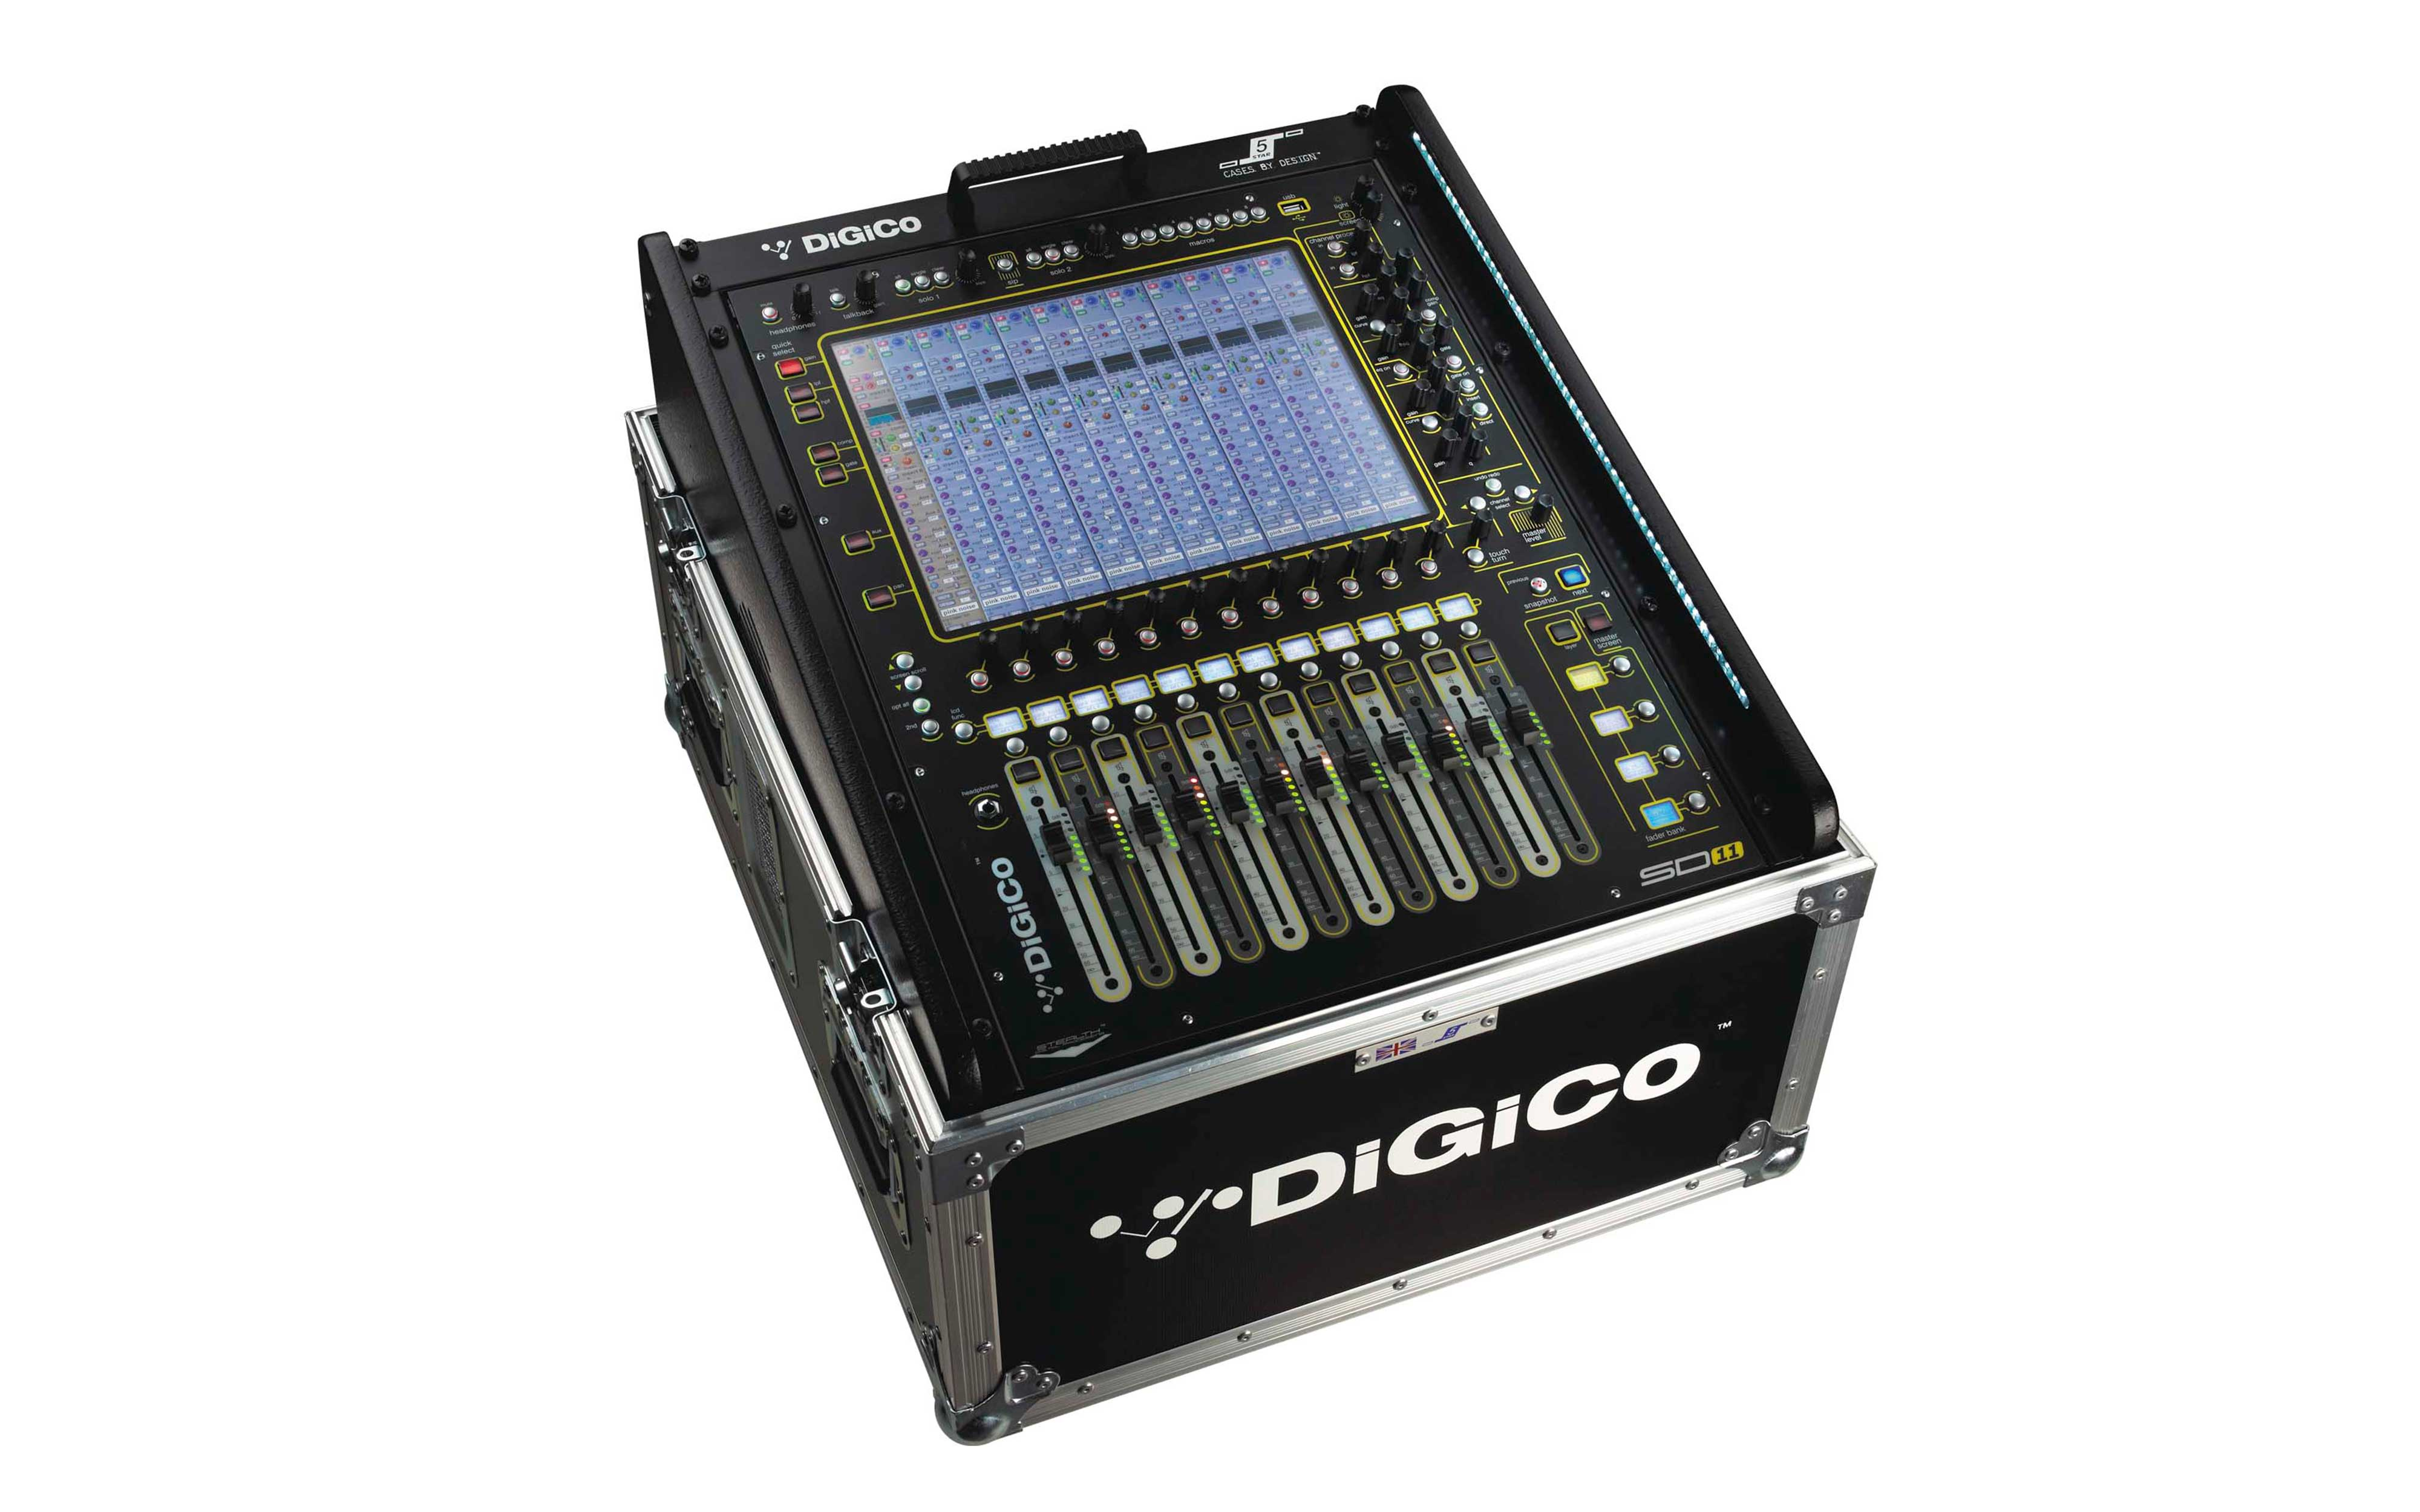 digico sd11 software